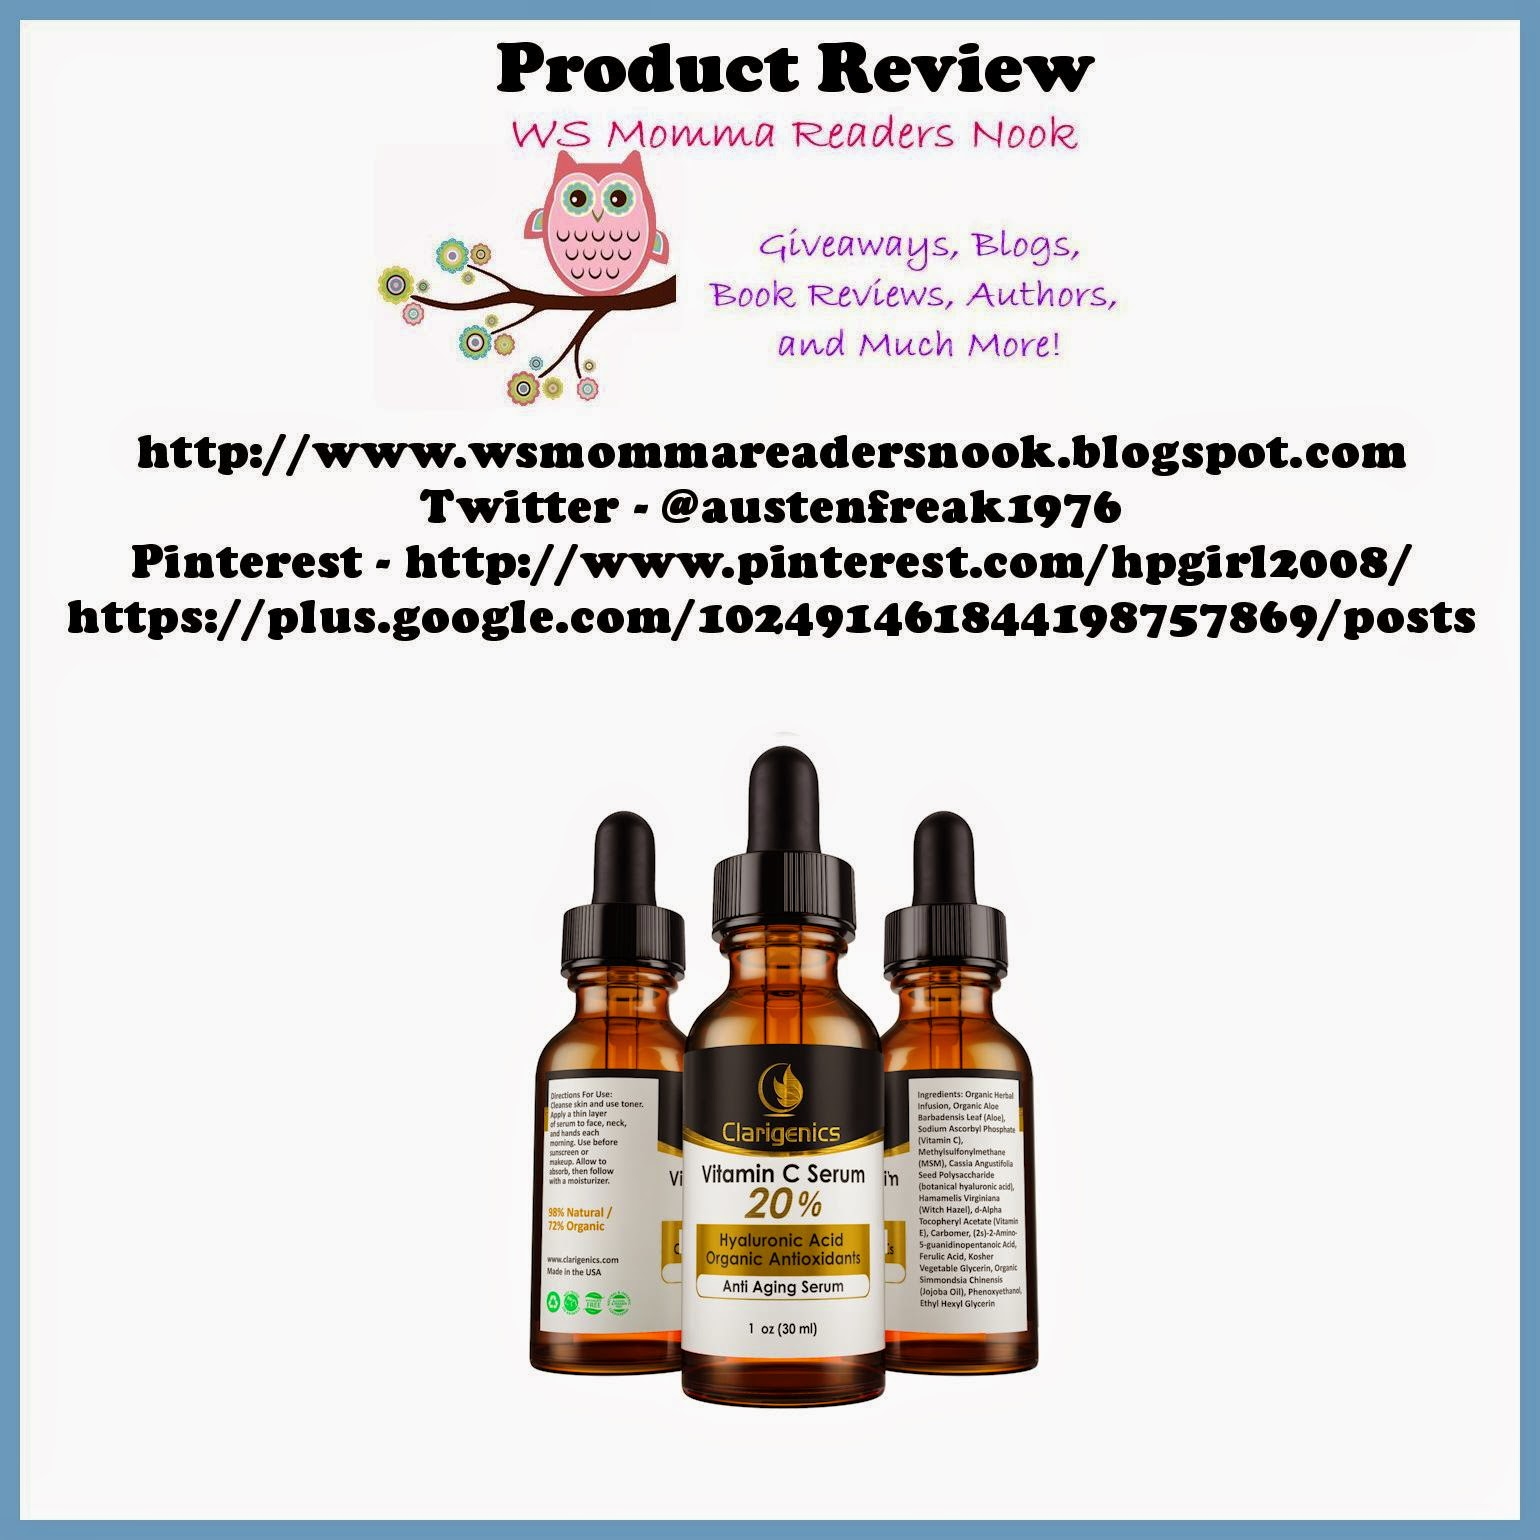 http://www.amazon.com/best-vitamin-serum-20-face/dp/b00hmudjxg/